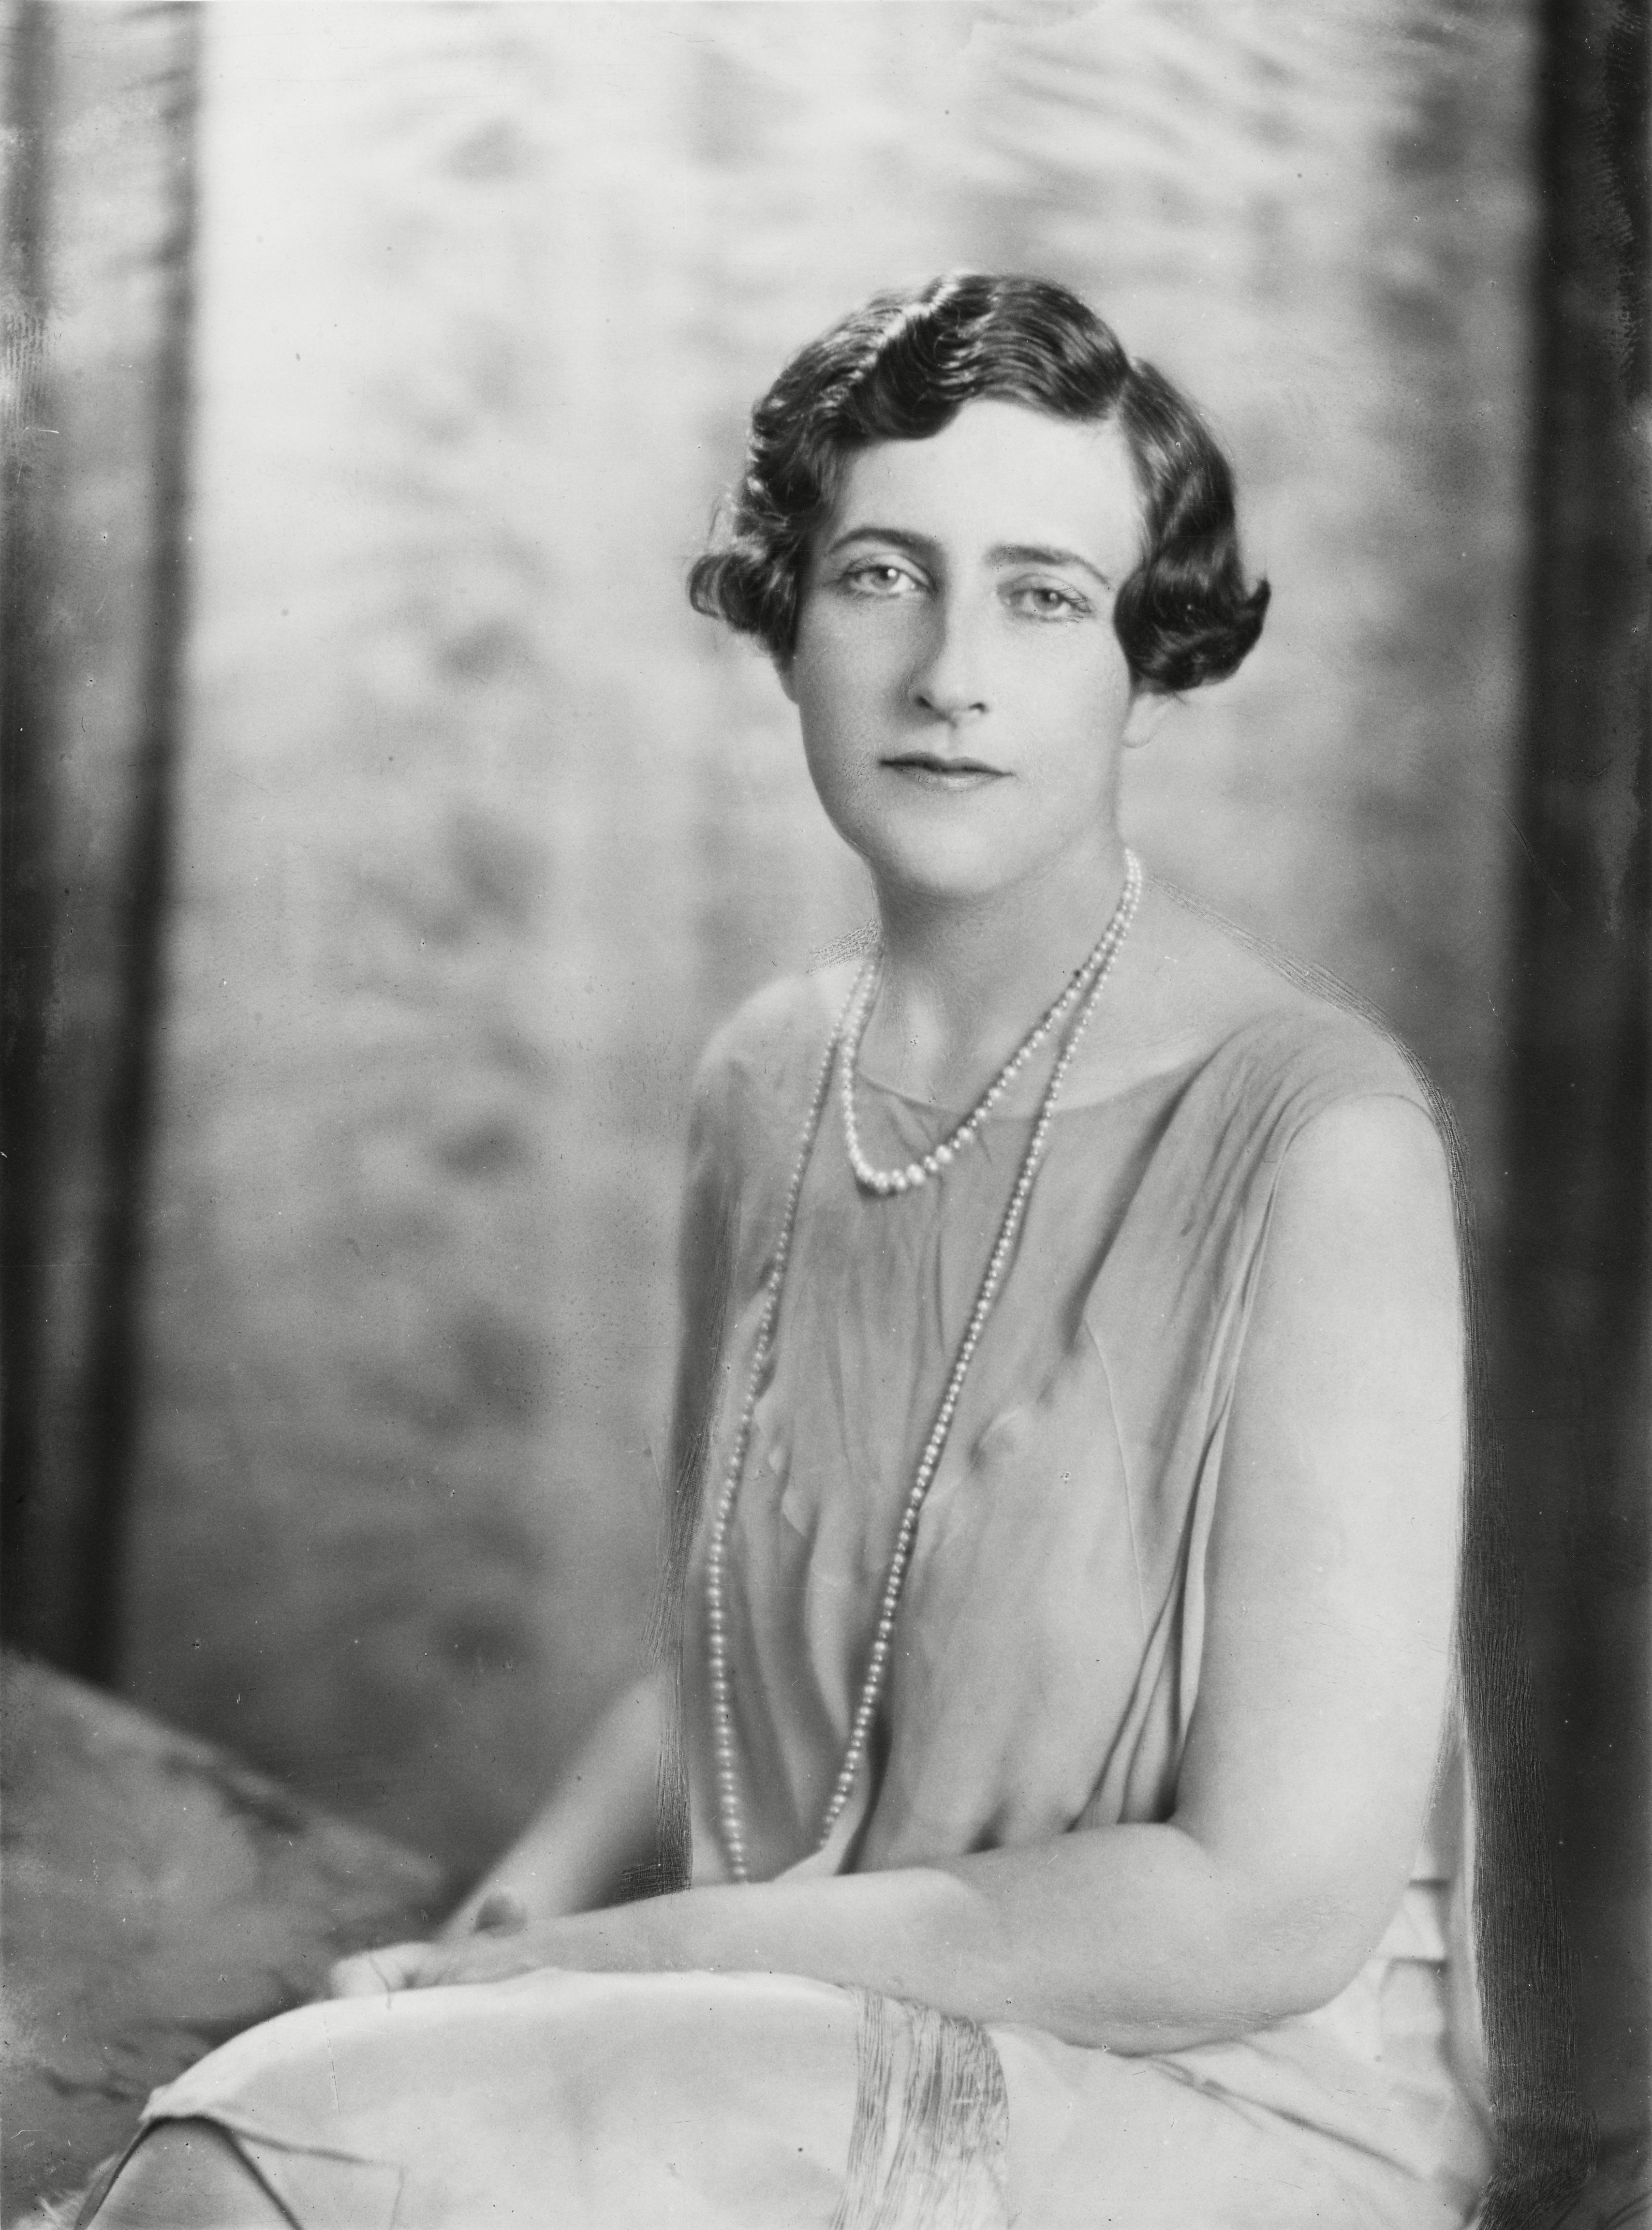 Mandatory Credit: Photo by Historia/Shutterstock (7665041ct) Agatha Christie (1891-1976) English Novelist and Crime Fiction Writer Photographed C 1925 C.1925 Historical Collection 144